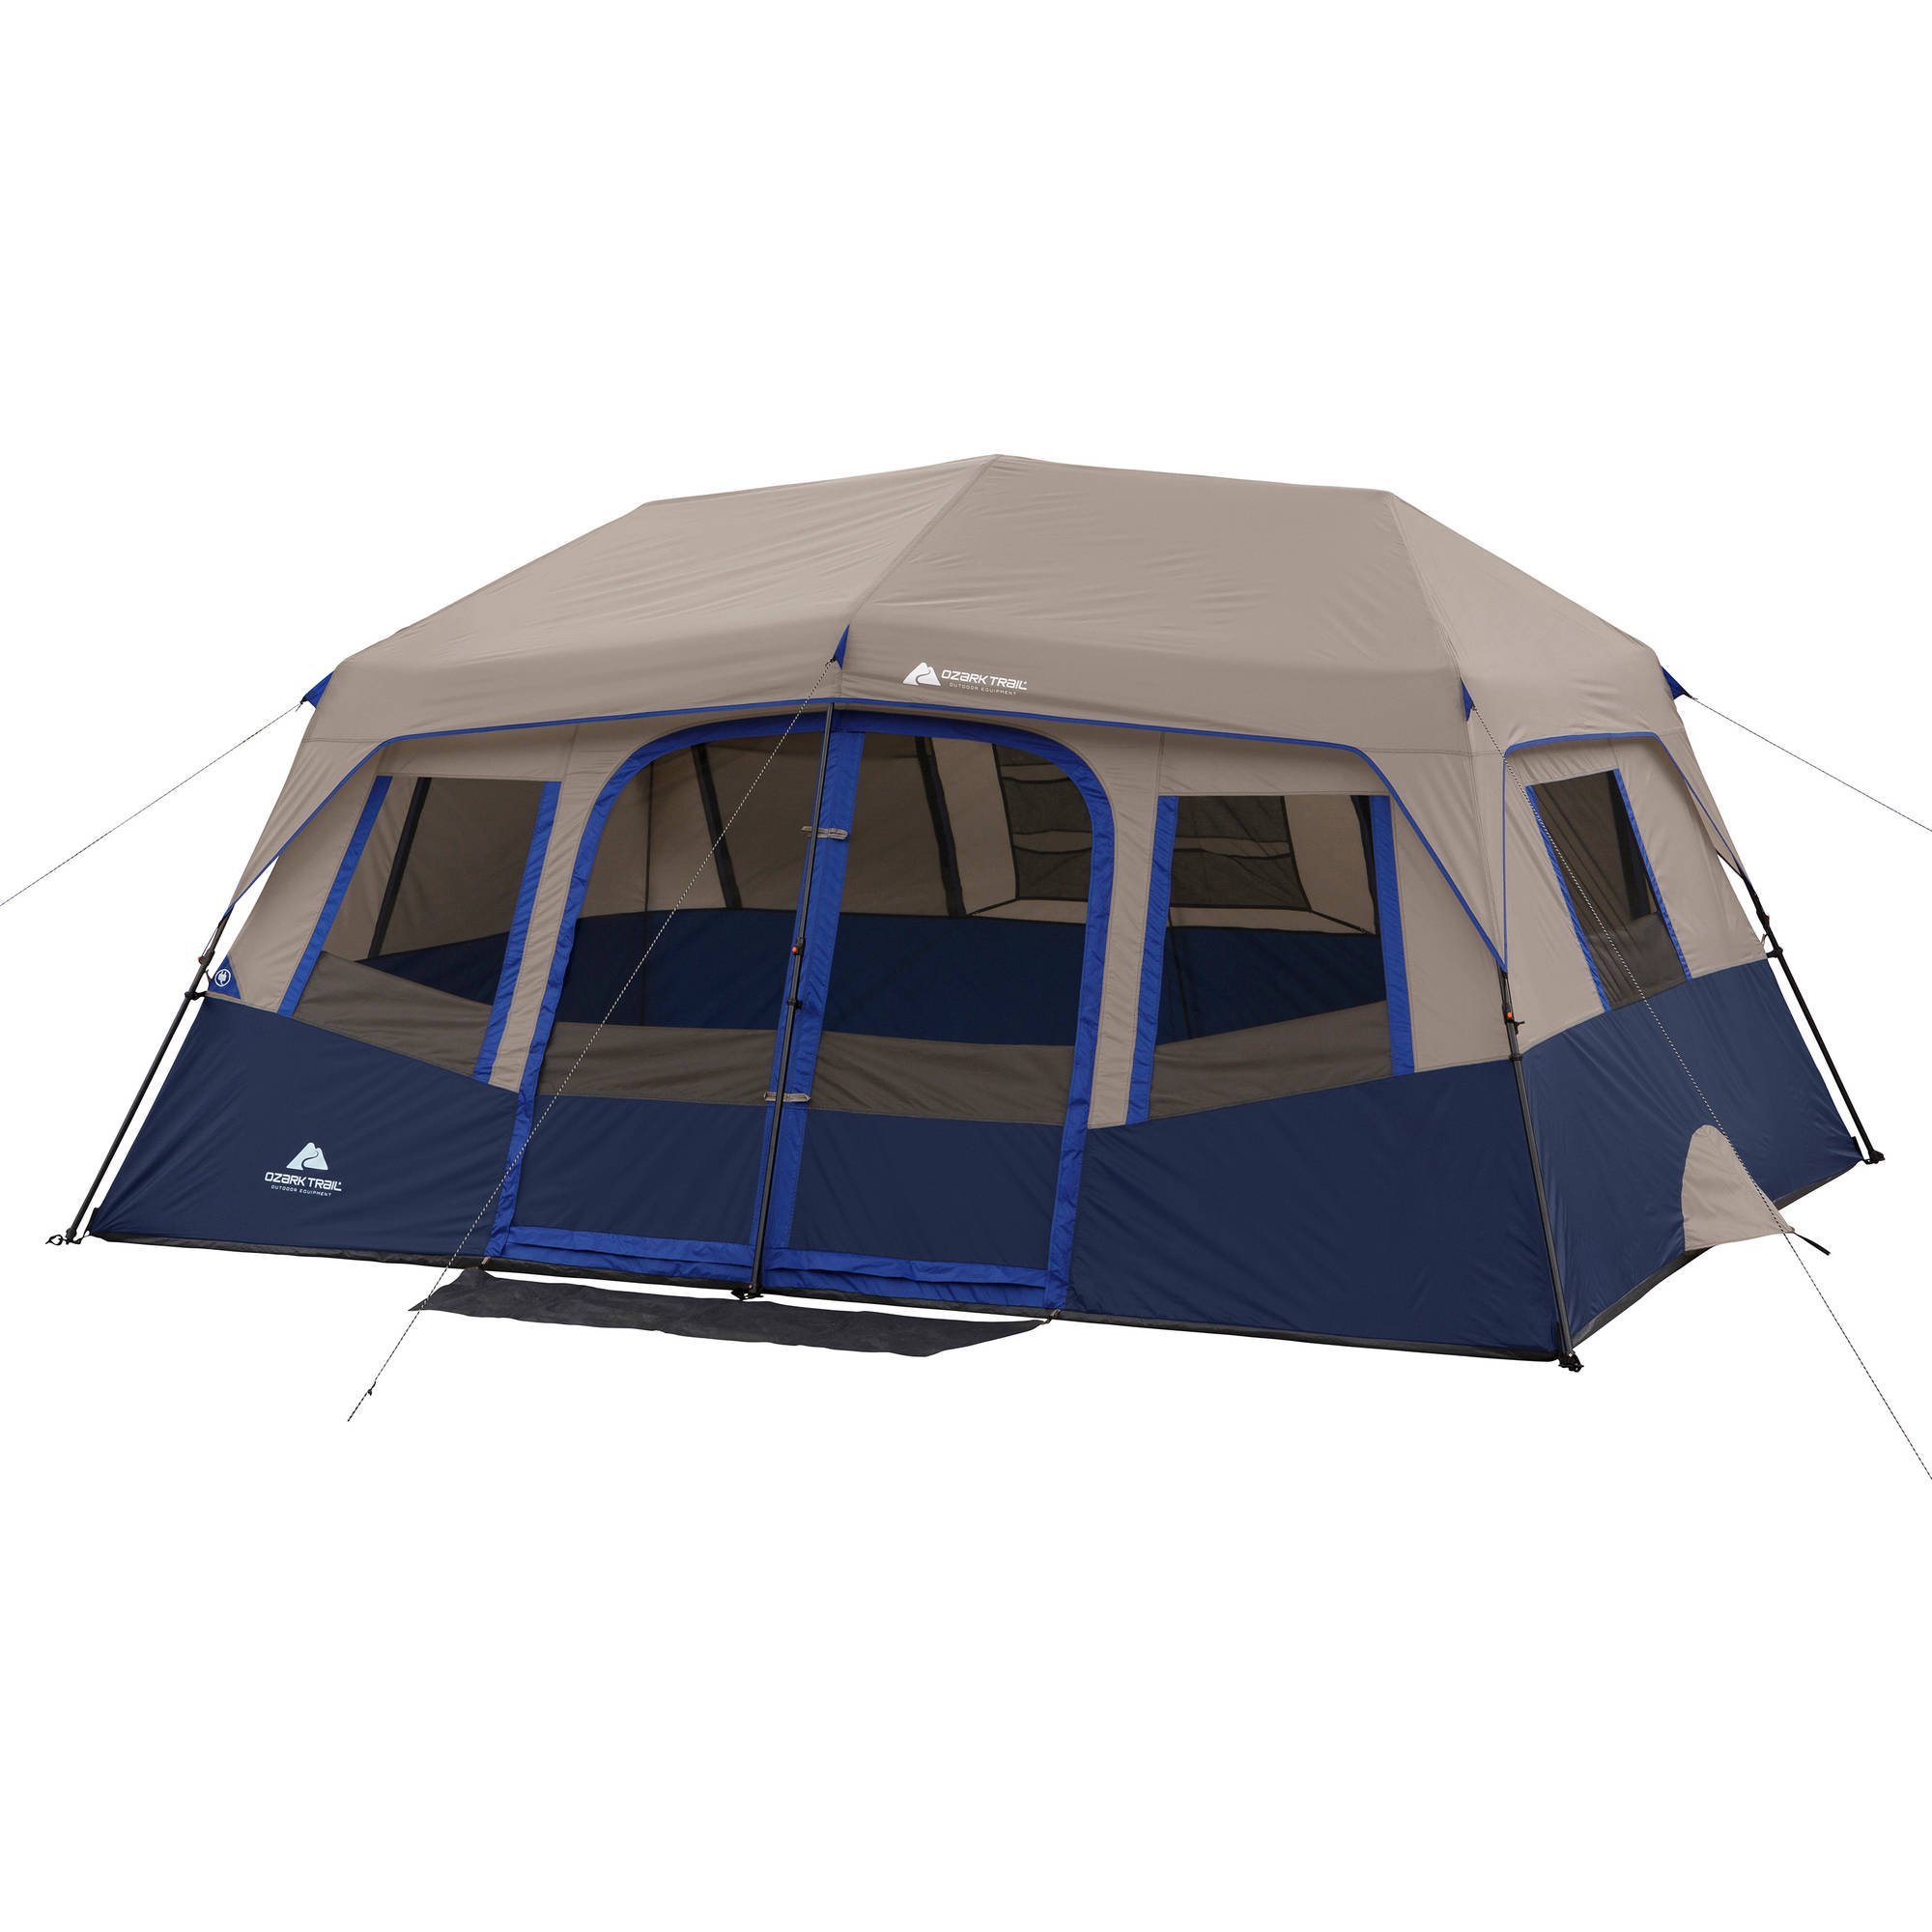 Ozark Trail 10 Person 2 Room Instant Cabin Tent  sc 1 st  Walmart & Ozark Trail 10 Person 2 Room Instant Cabin Tent - Walmart.com